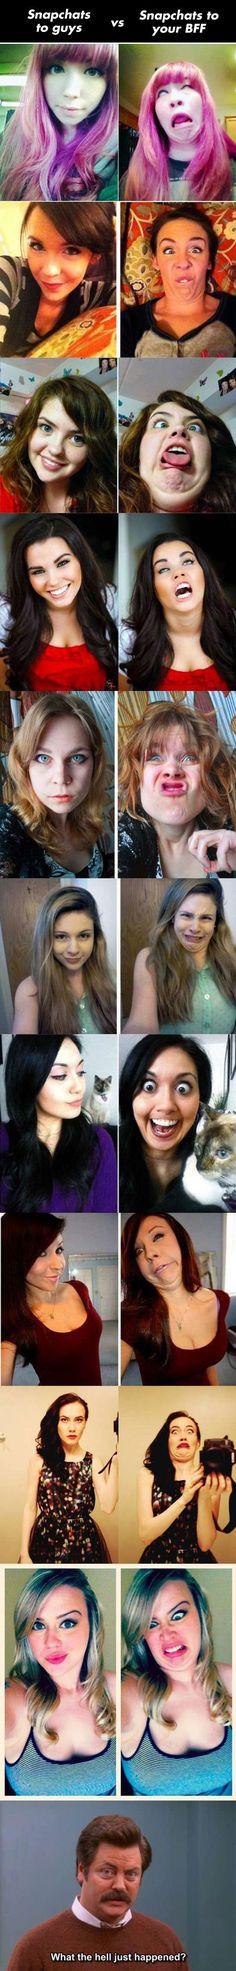 Snapchating: Guys vs BFF's // funny pictures - funny photos - funny images - funny pics - funny quotes - #lol #humor #funnypictures